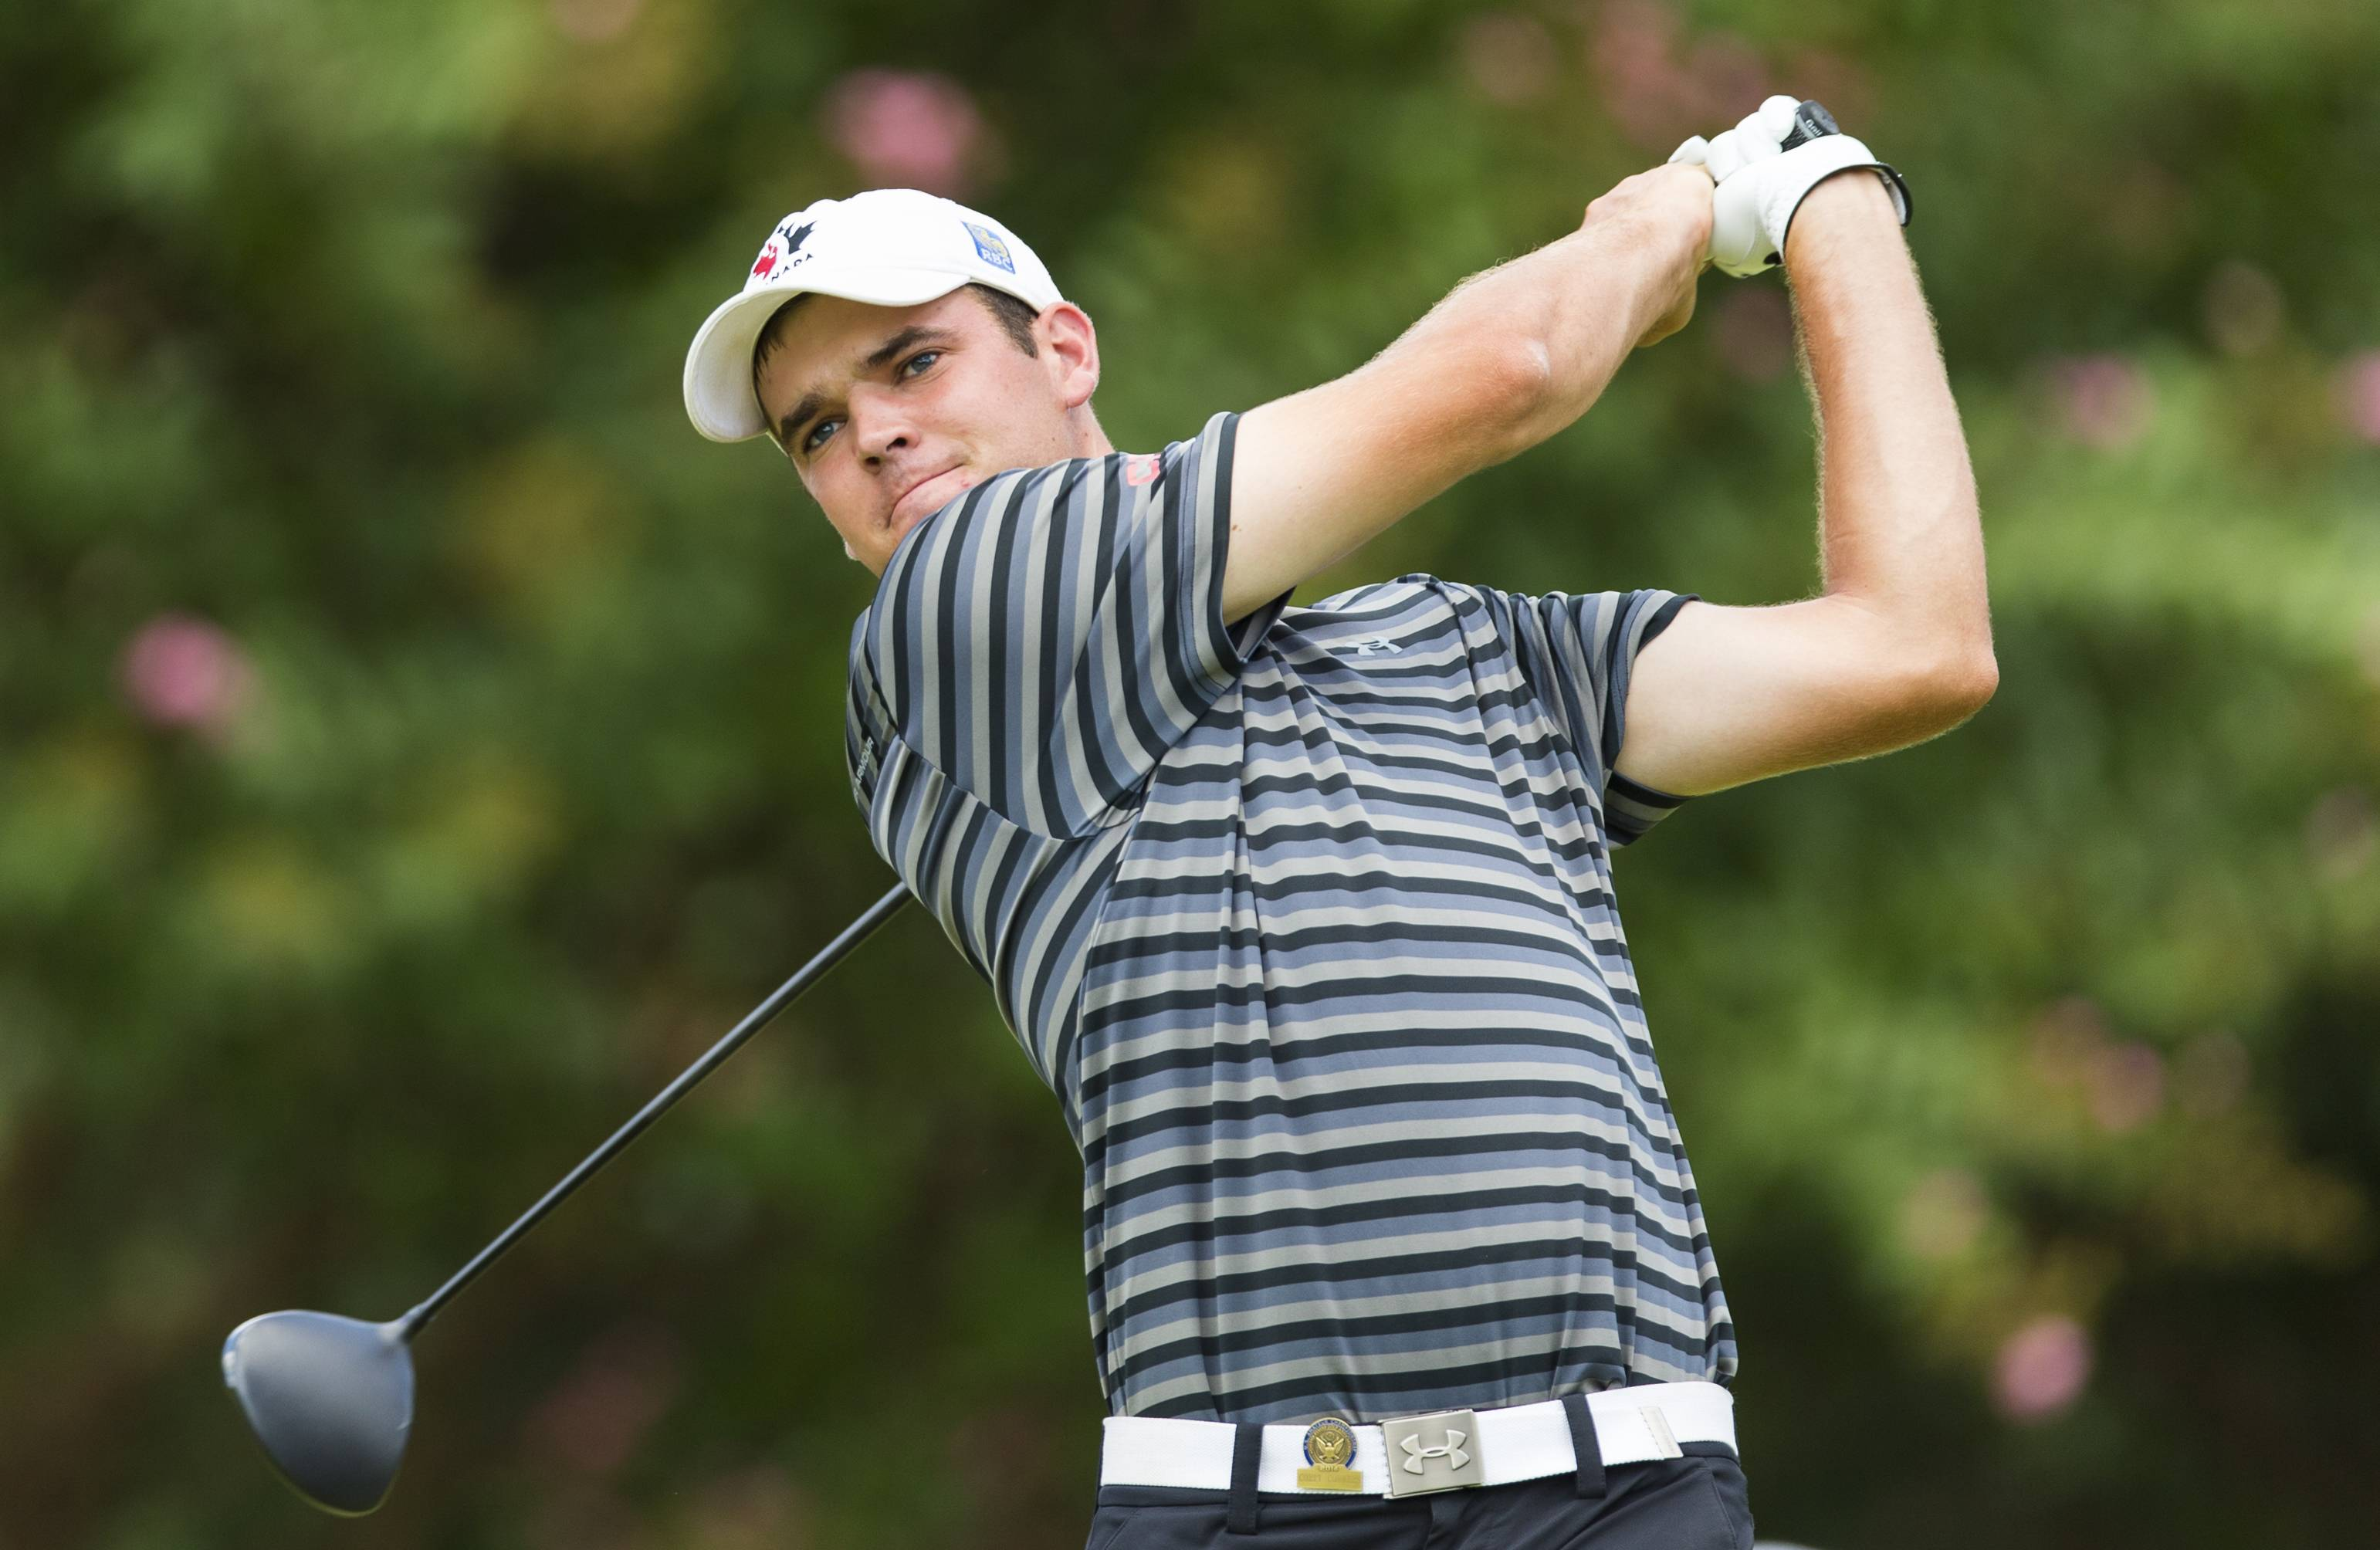 Corey Conner of Canada advanced to the quarterfinals after winning his third-round match play at the U.S. Amateur golf tournament at Atlanta Athletic Club in Johns Creek, Ga., Thursday. Doug Ghim of Arlington Heights and Dan Stringfellow of Roselle lost in the Round of 64 on Wednesday.